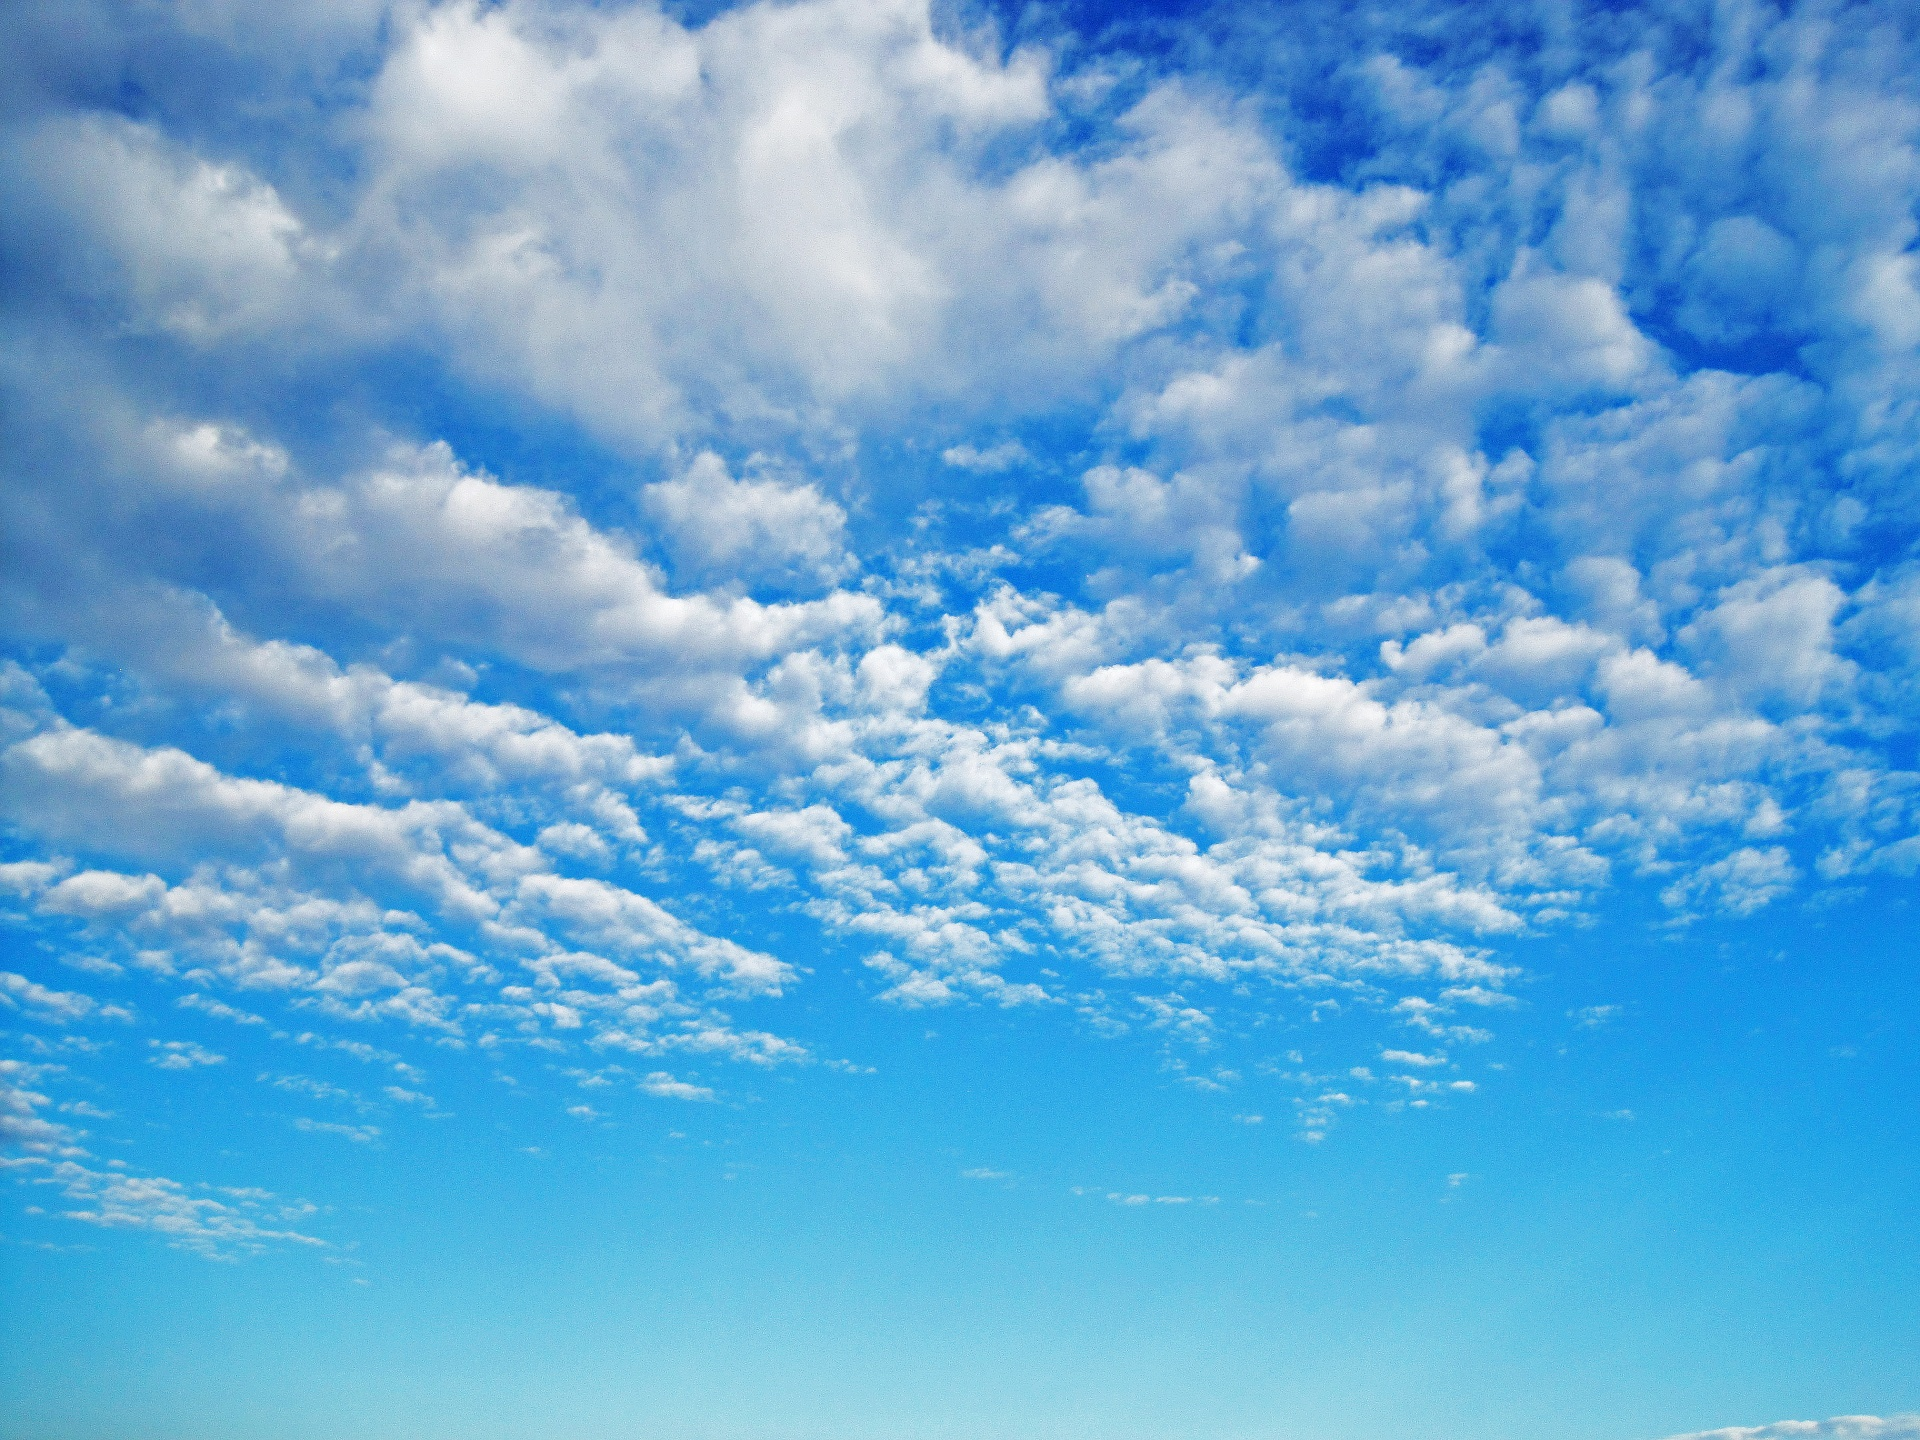 Bright Blue Sky With White Clouds Free Stock Photo - Public Domain ...